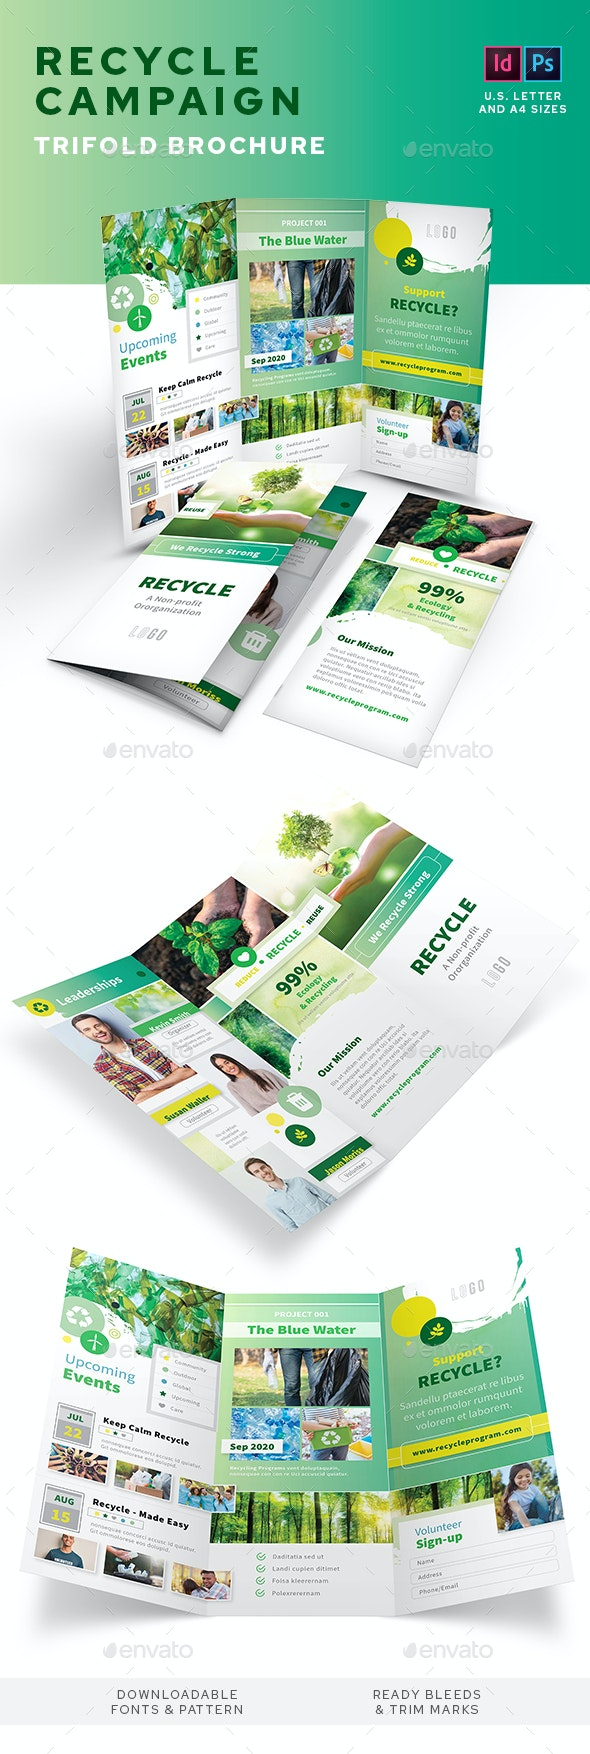 Recycling Campaign Trifold Brochure - Informational Brochures